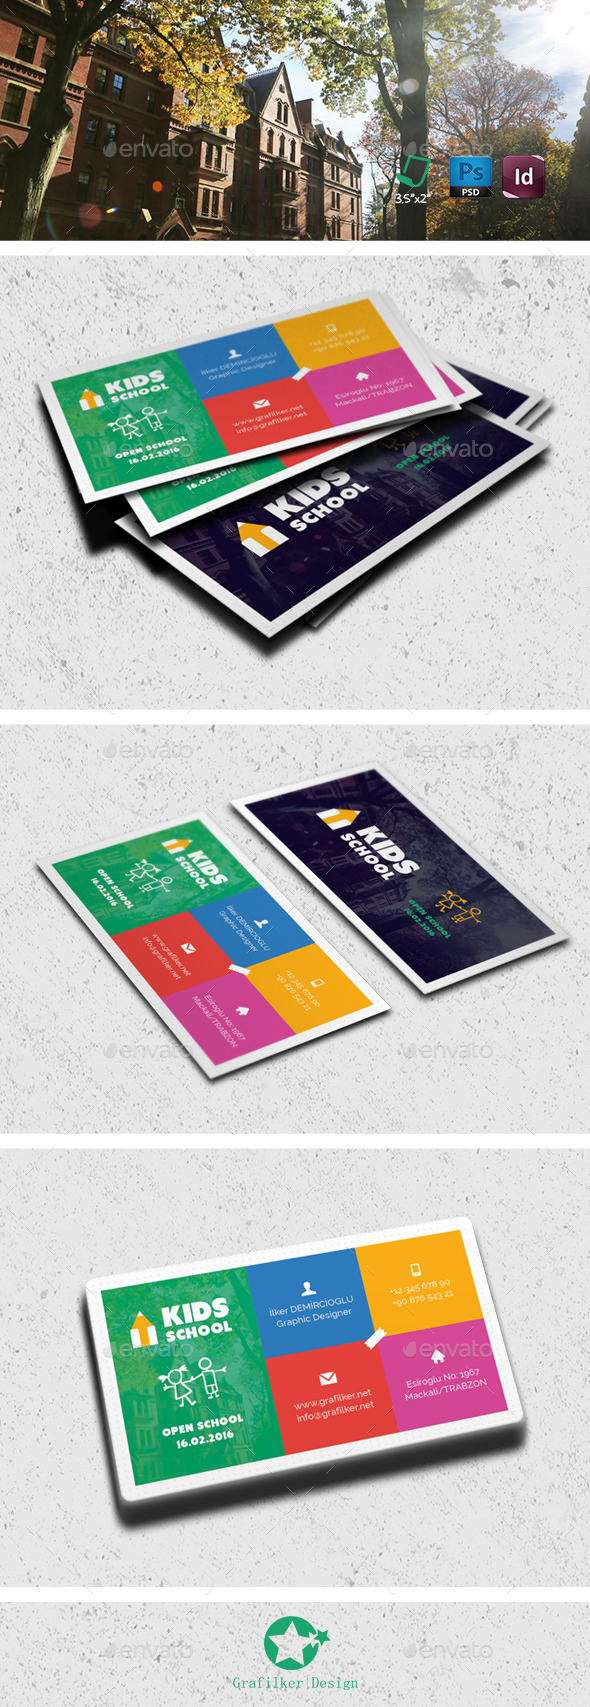 Kids School Business Card Templates - Corporate Business Cards